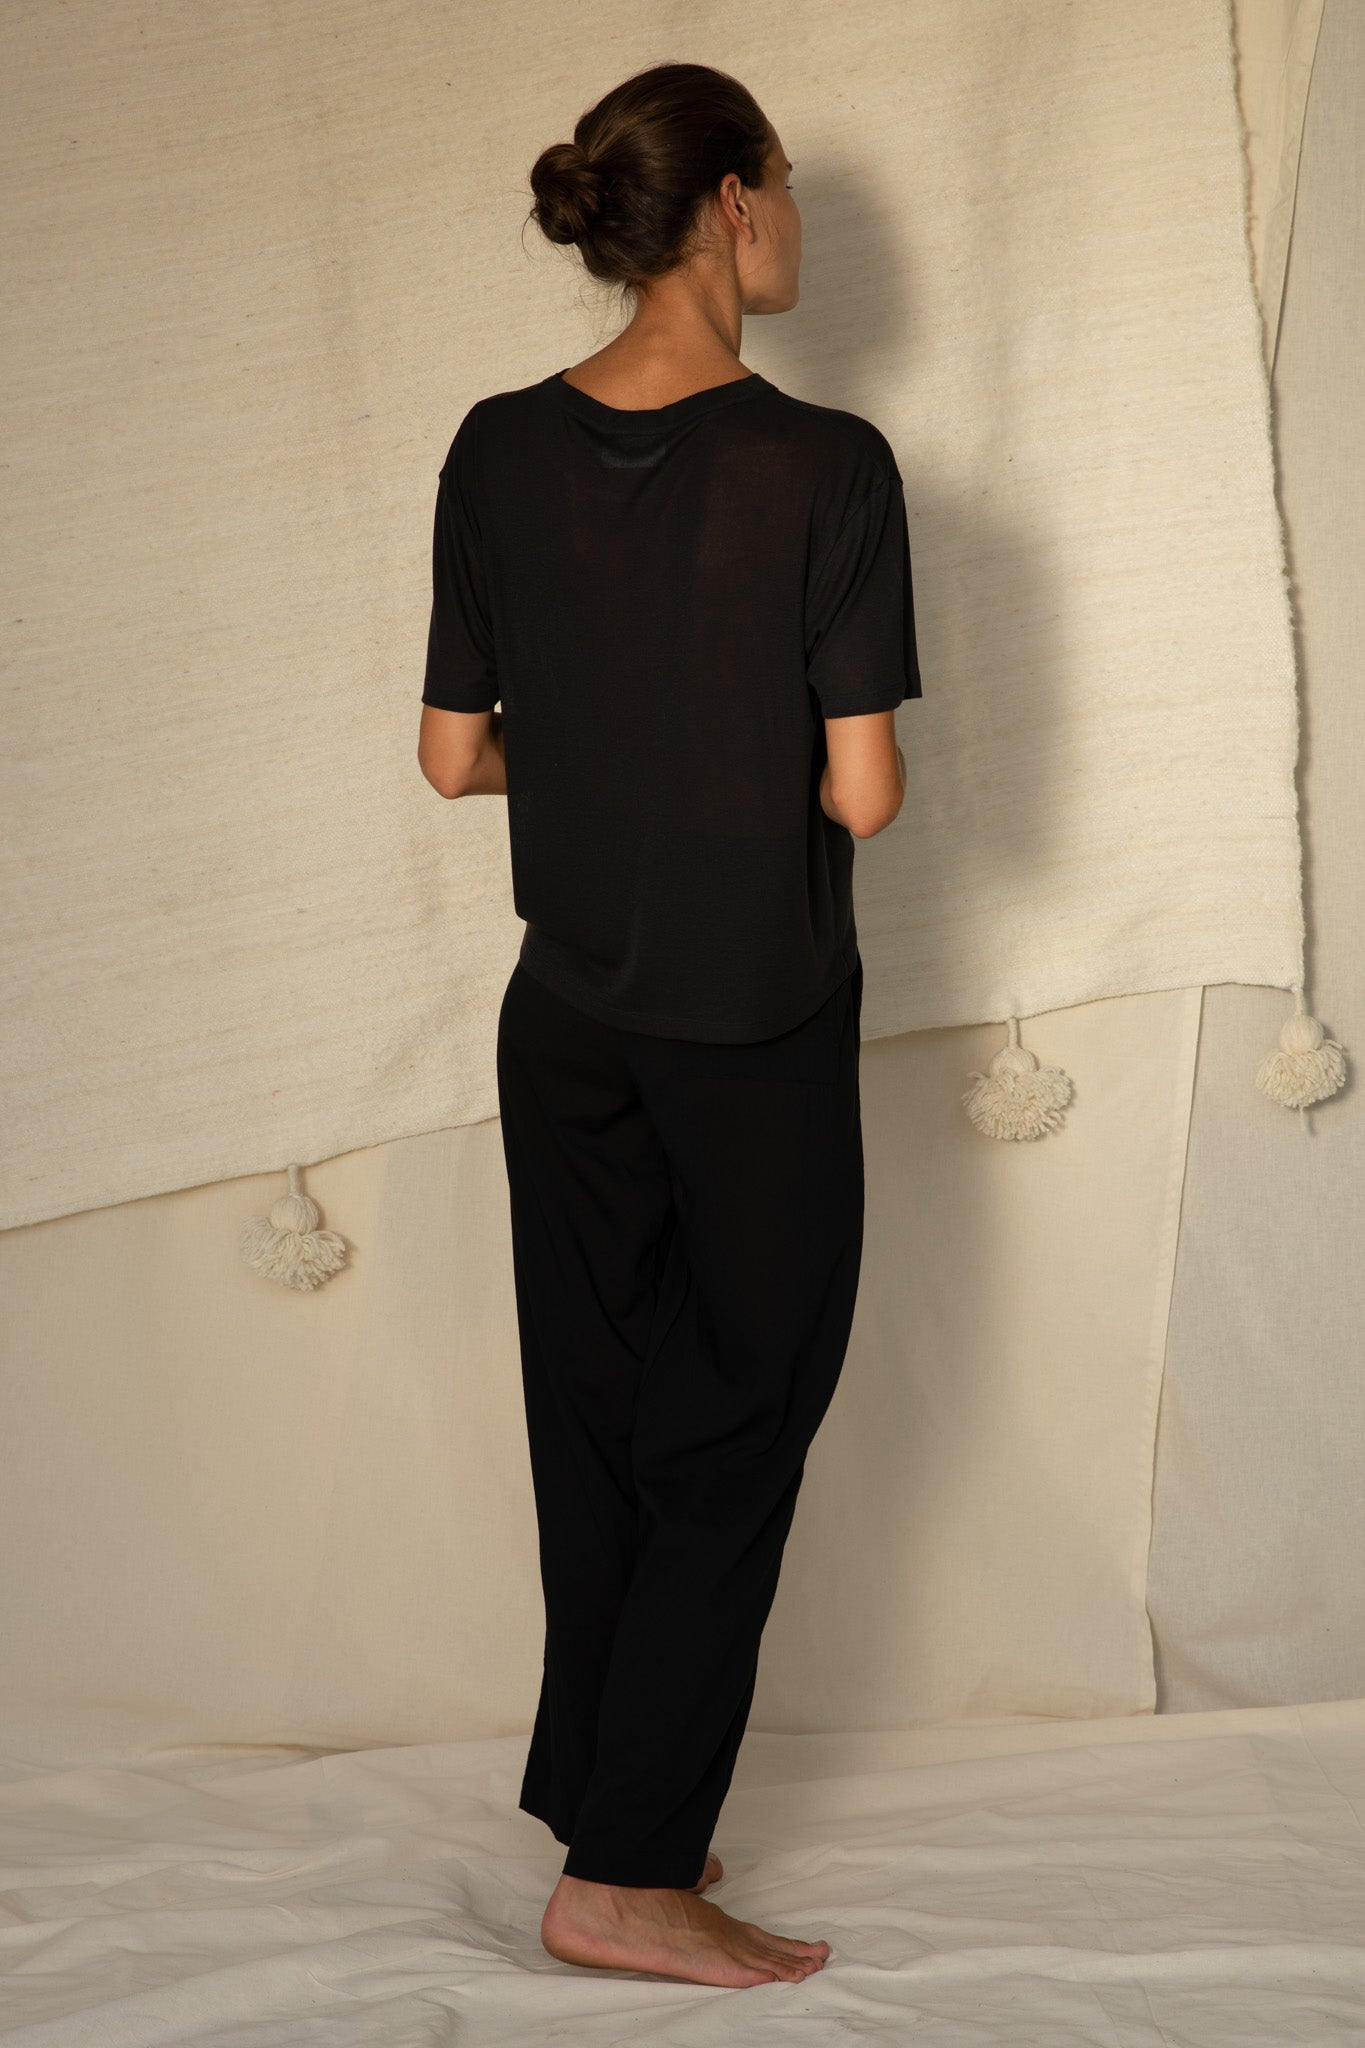 Relax T-Shirt S/S in Black